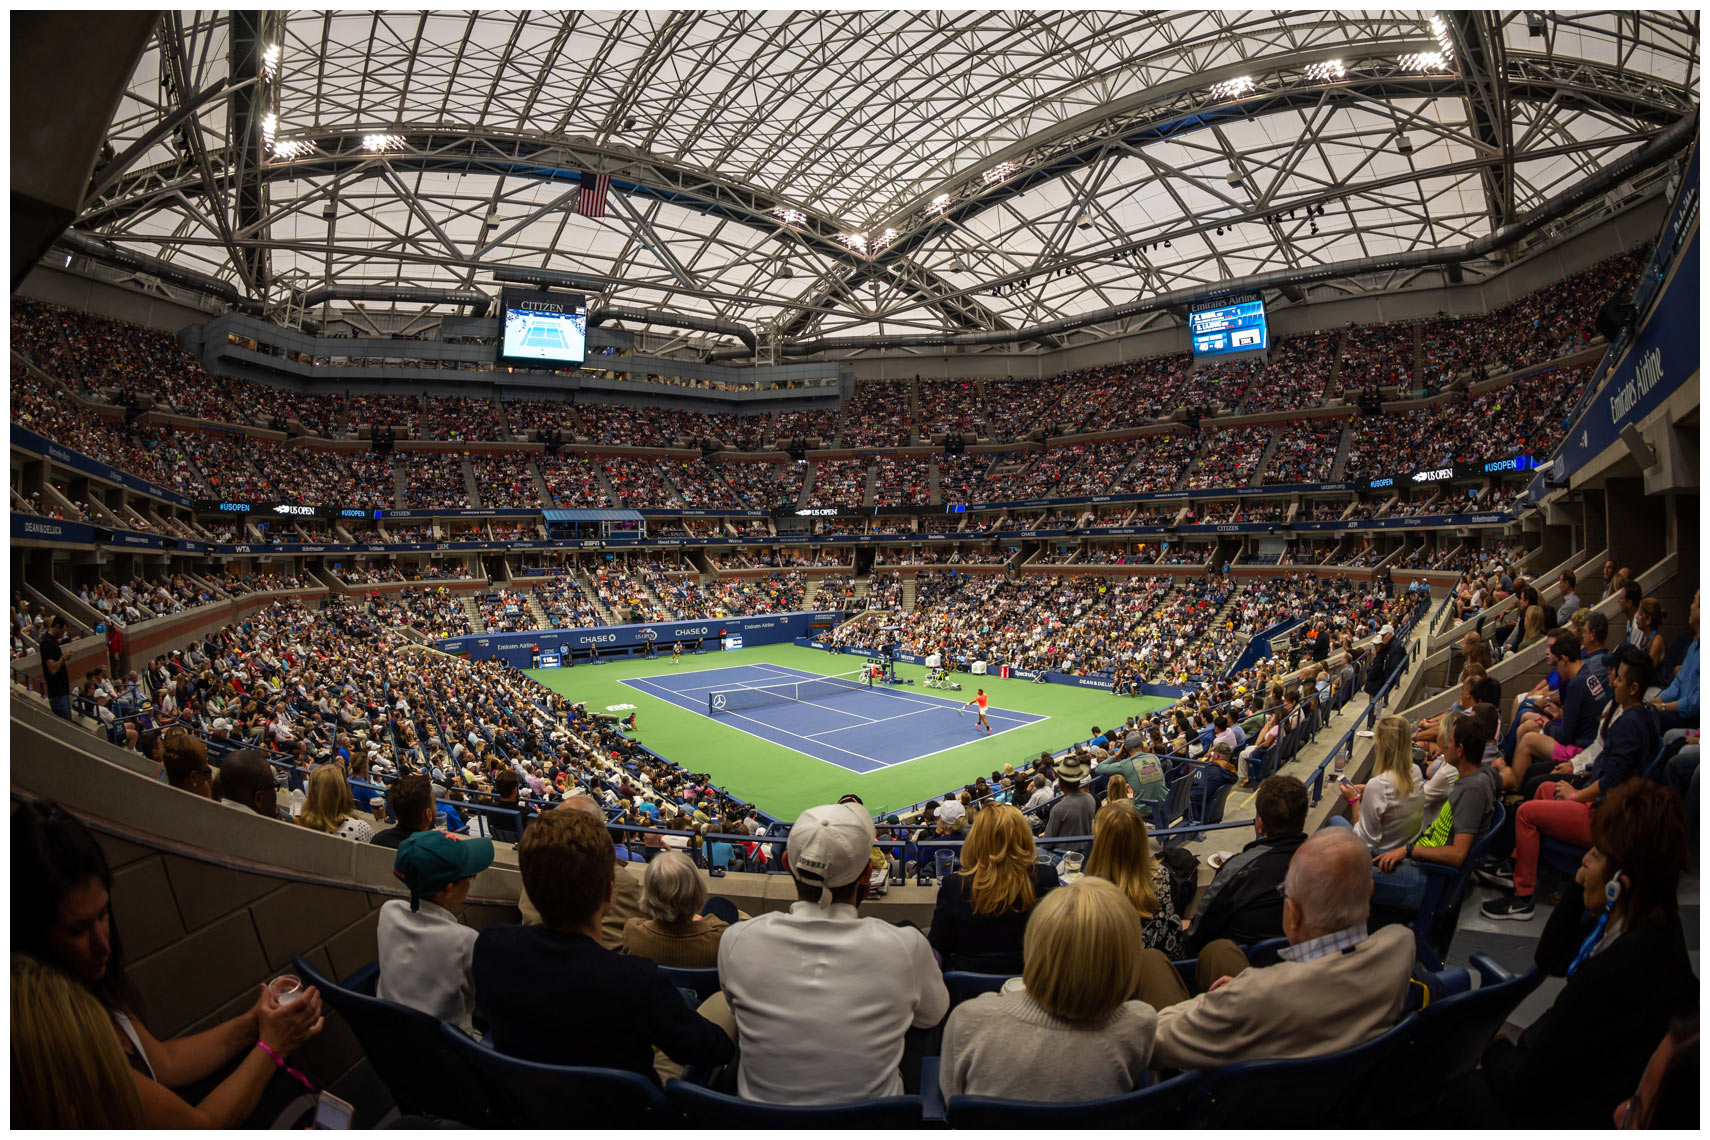 us-open-tennis-mercedes-benz-hospitality-match